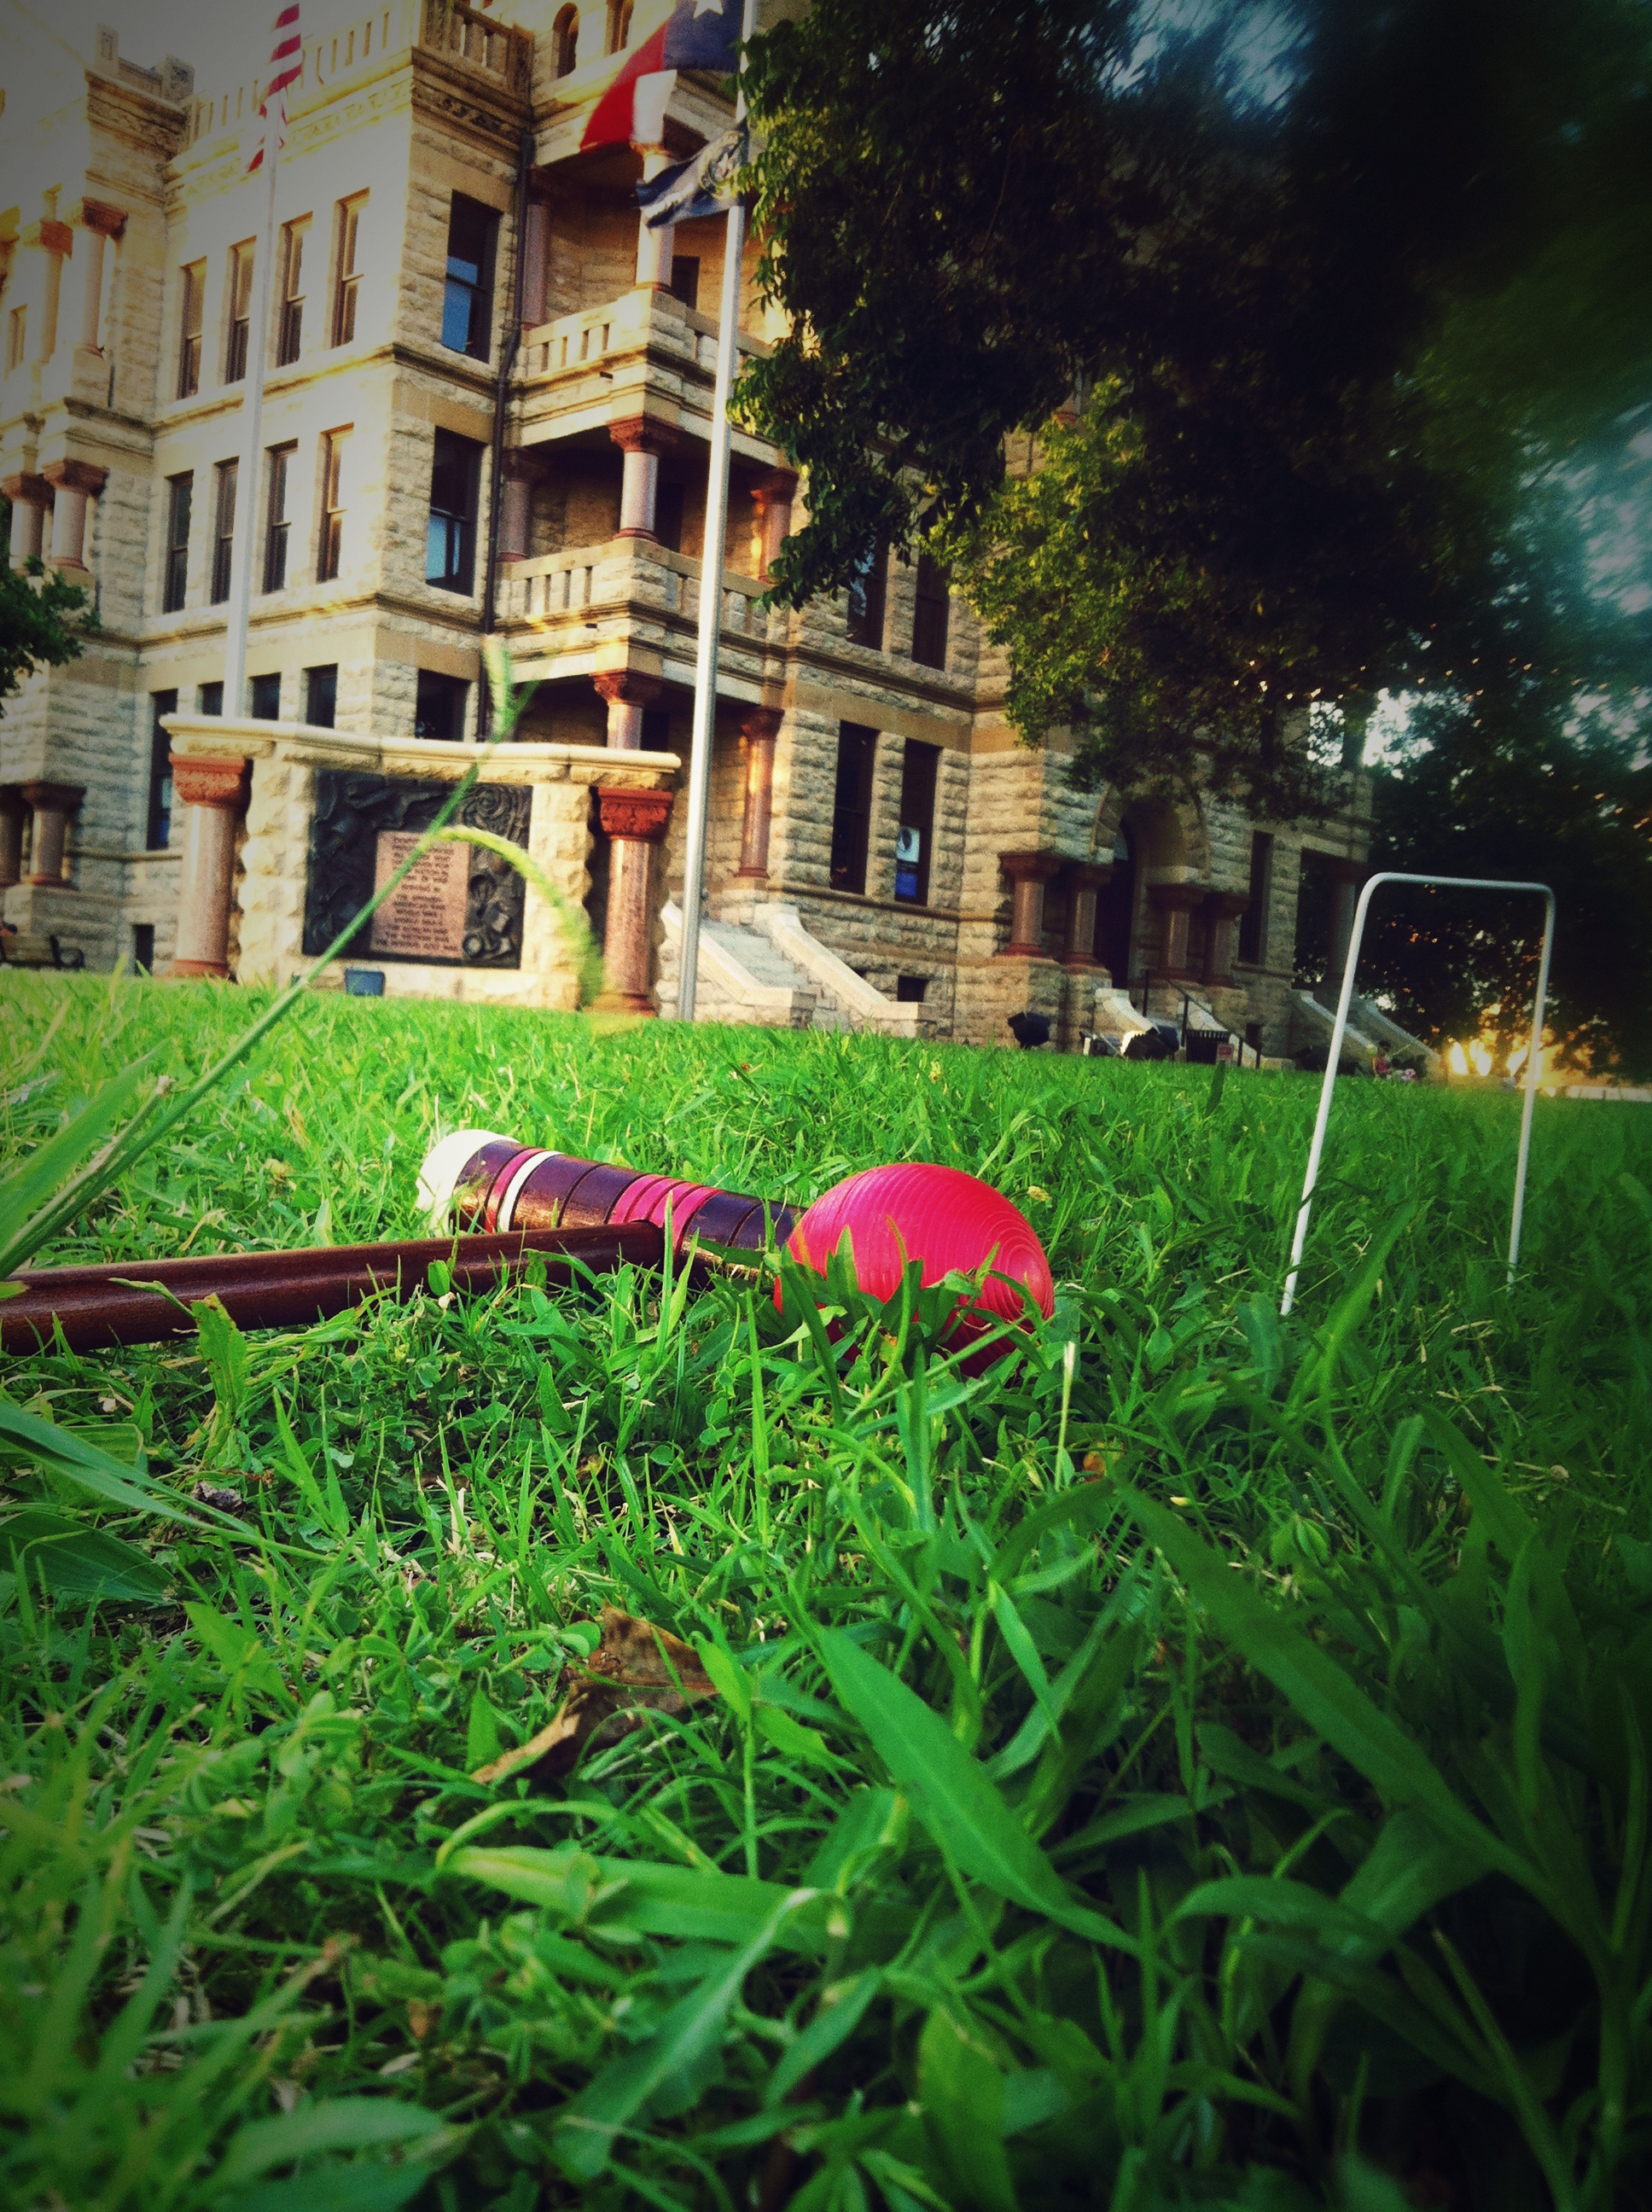 Croquet + a bottle of Prosecco = Crosseco on the square. Pronunciation still undecided.